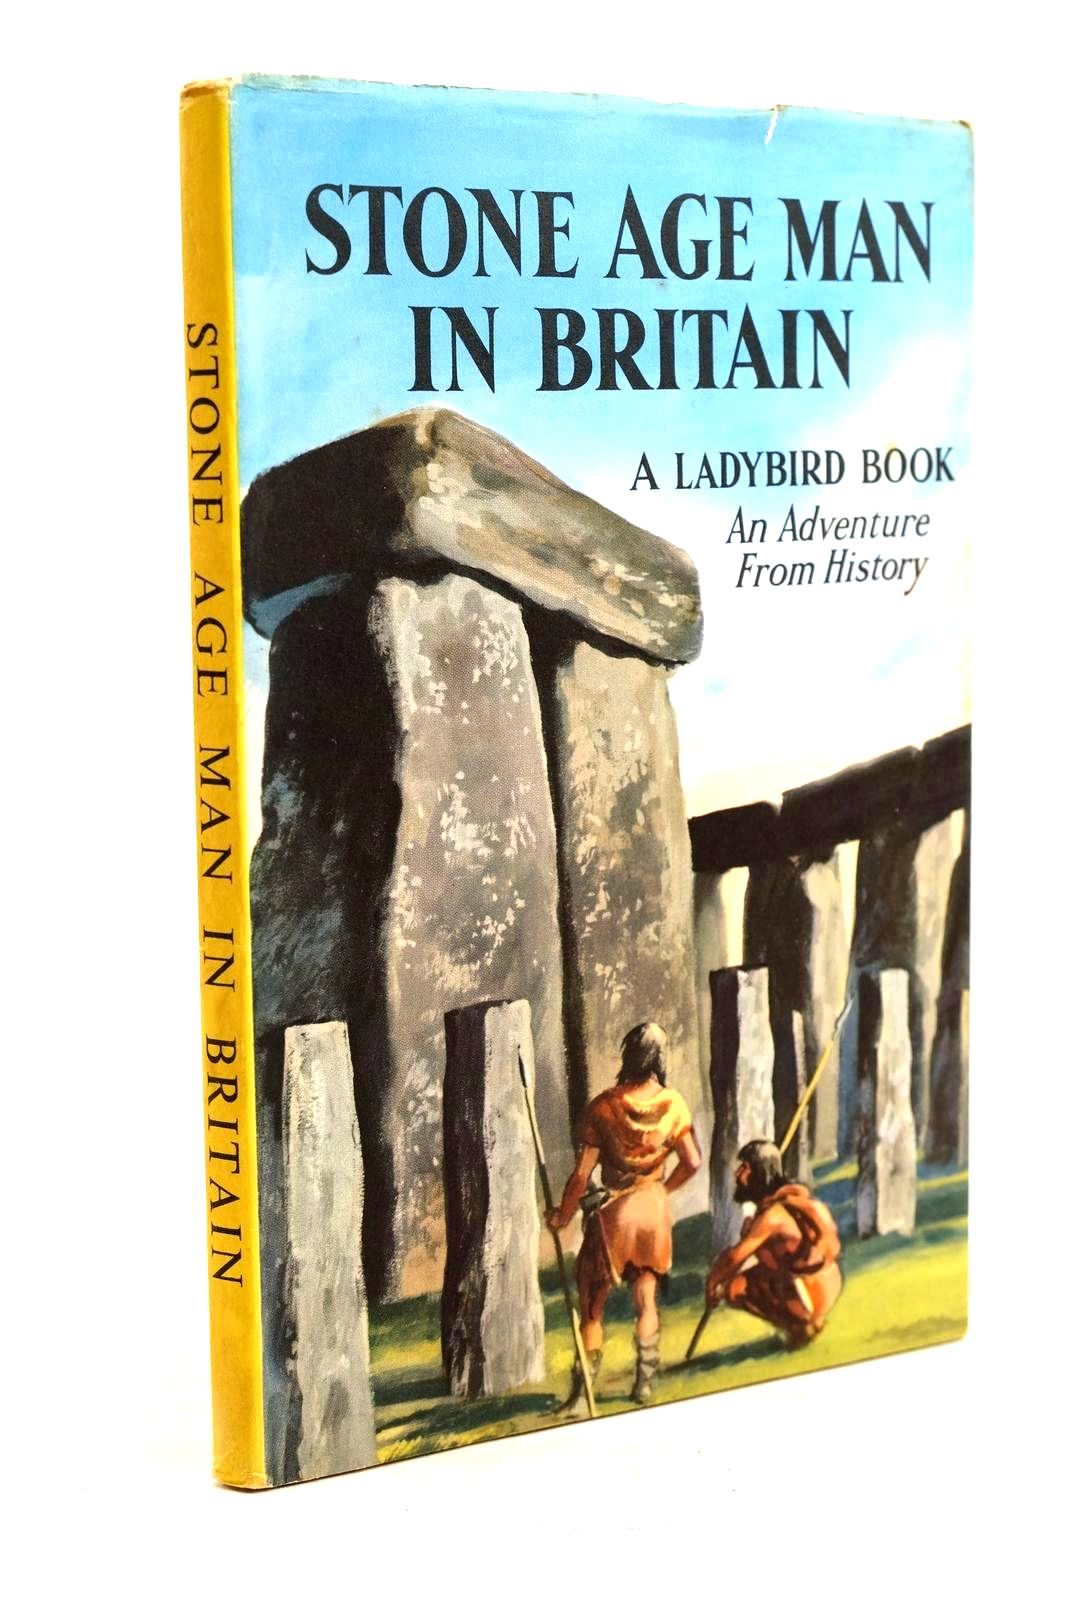 Photo of STONE AGE MAN IN BRITAIN written by Peach, L. Du Garde illustrated by Kenney, John published by Wills & Hepworth Ltd. (STOCK CODE: 1320630)  for sale by Stella & Rose's Books